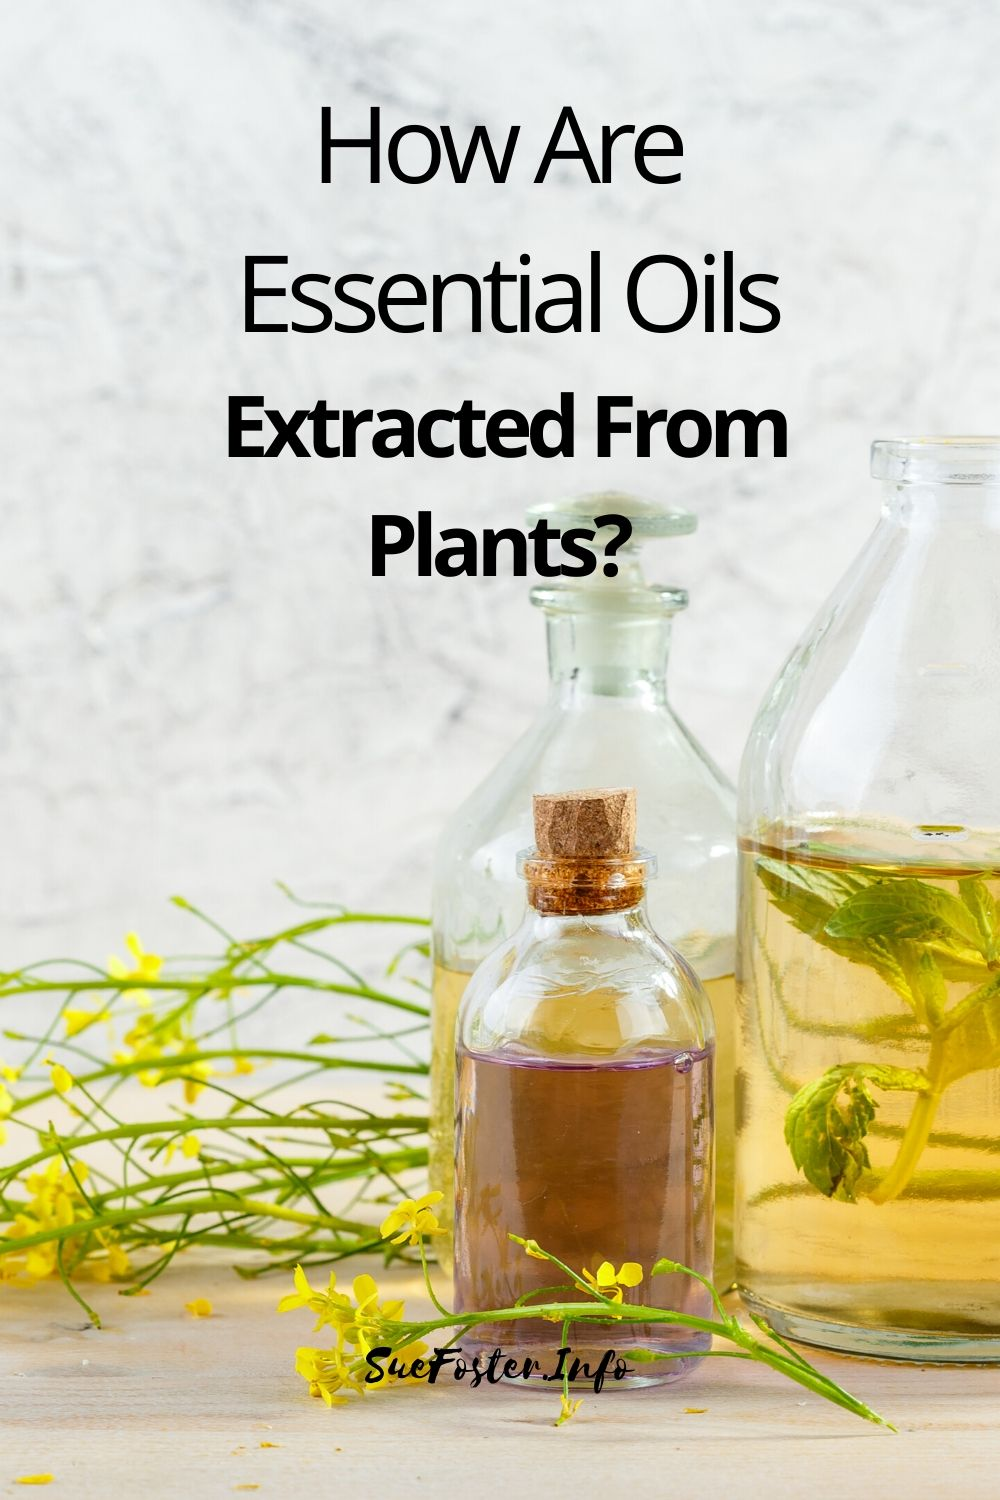 How Are Essential Oils Extracted From Plants? Find out the most common methods of essential oil extraction.